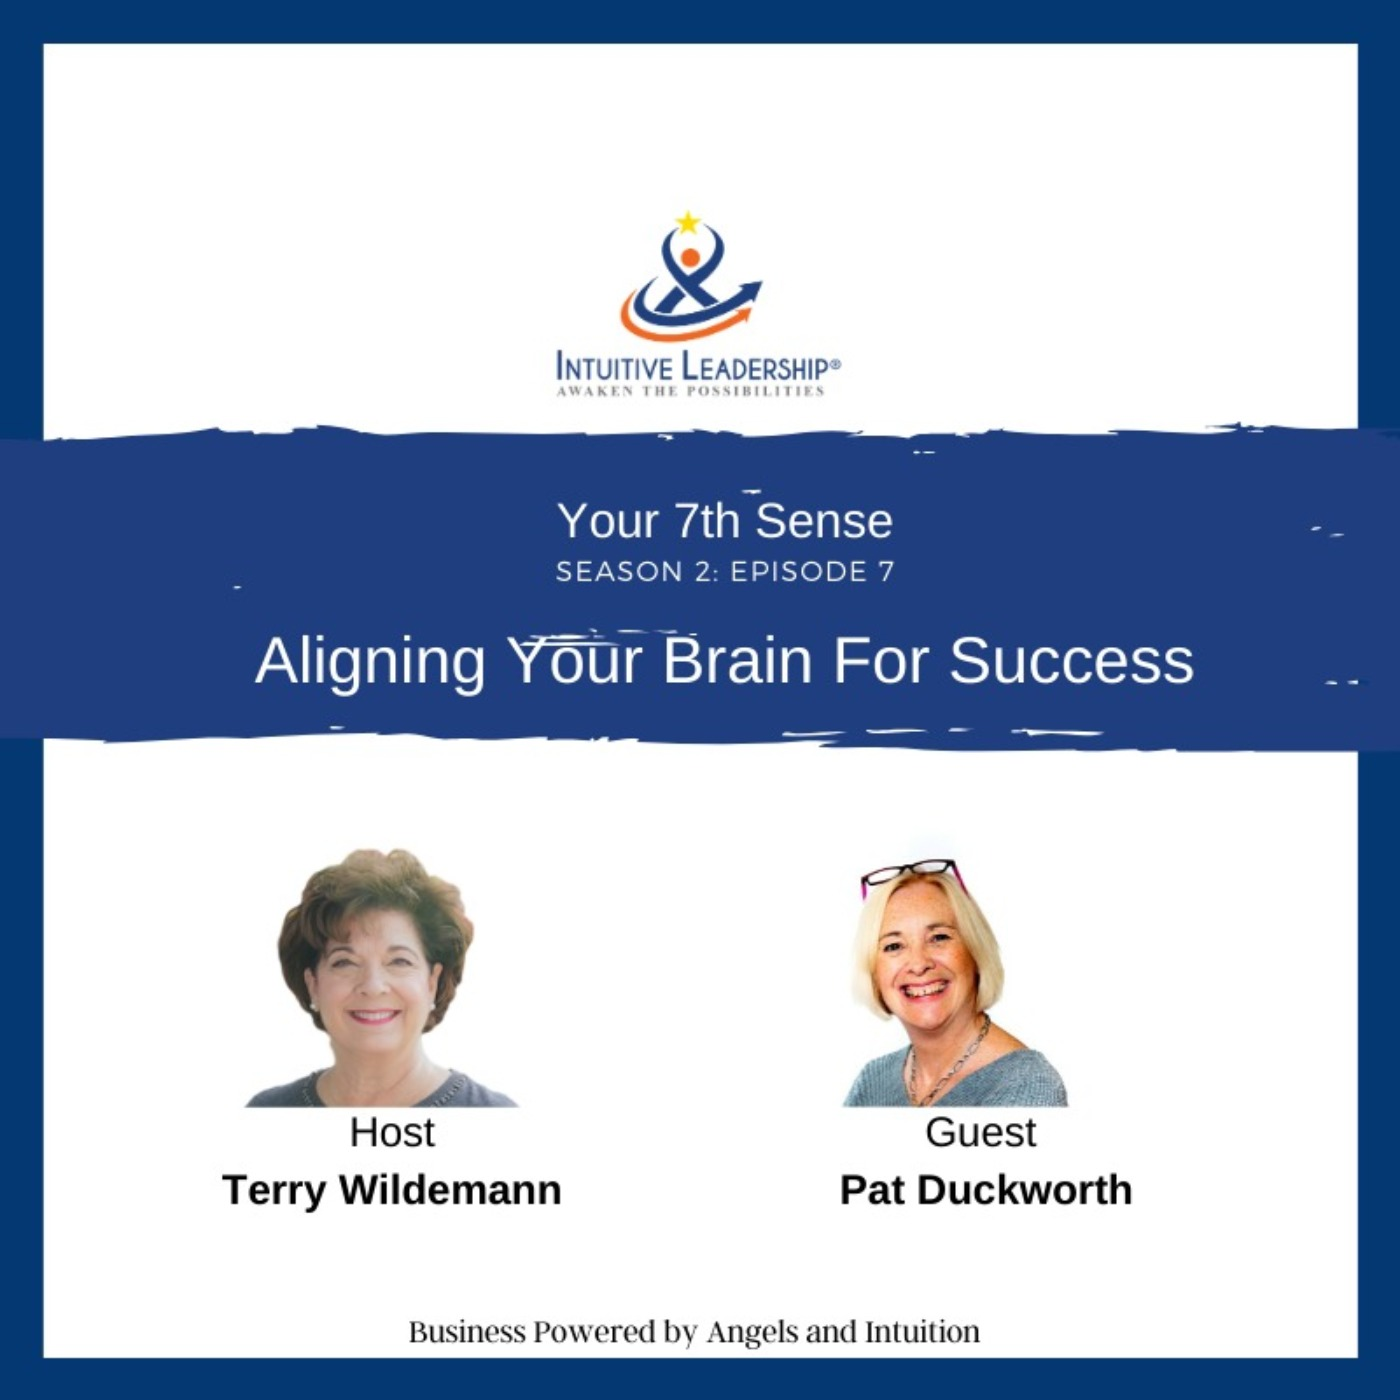 Your 7th Sense: Aligning Your Brain For Success